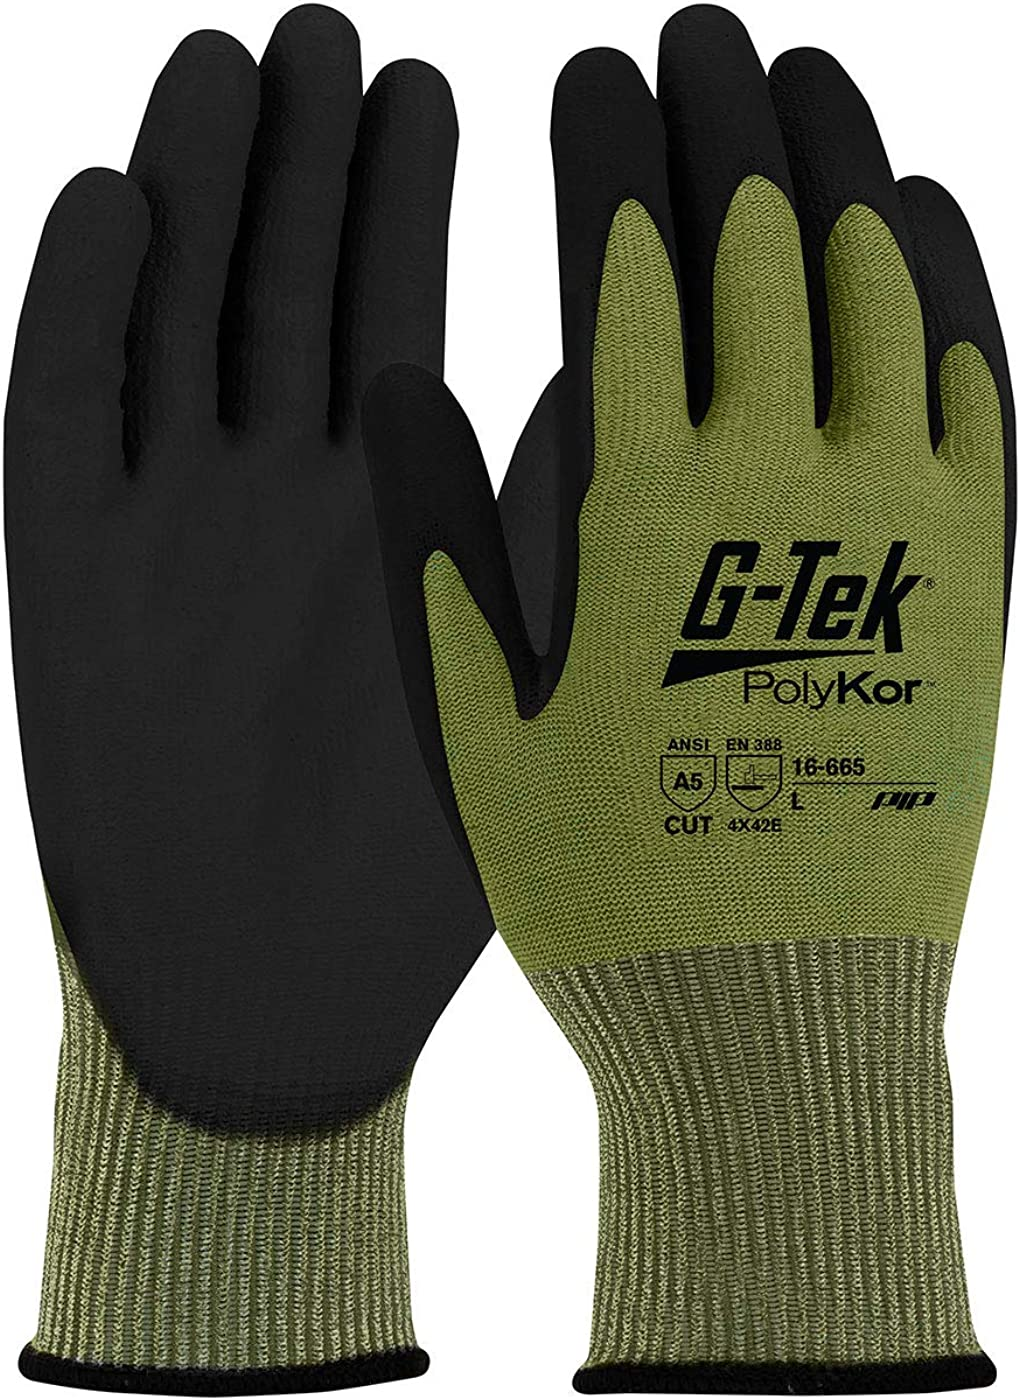 G-Tek PolyKor Seamless Knit Blended Excellence with Max 82% OFF Polyureth Glove